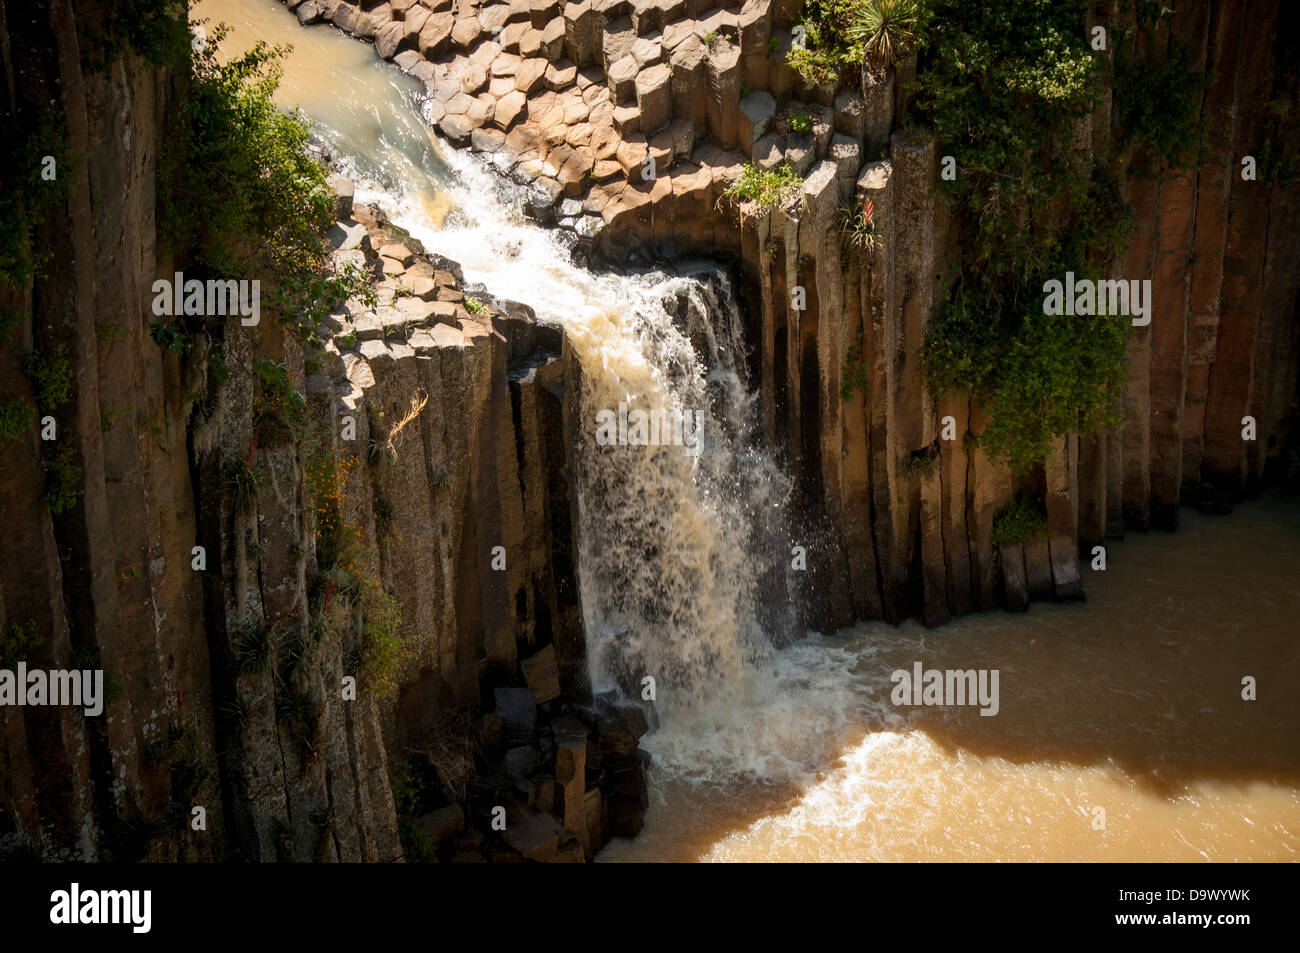 Waterfall surrounded by basalt prisms in Hidalgo, Mexico - Stock Image